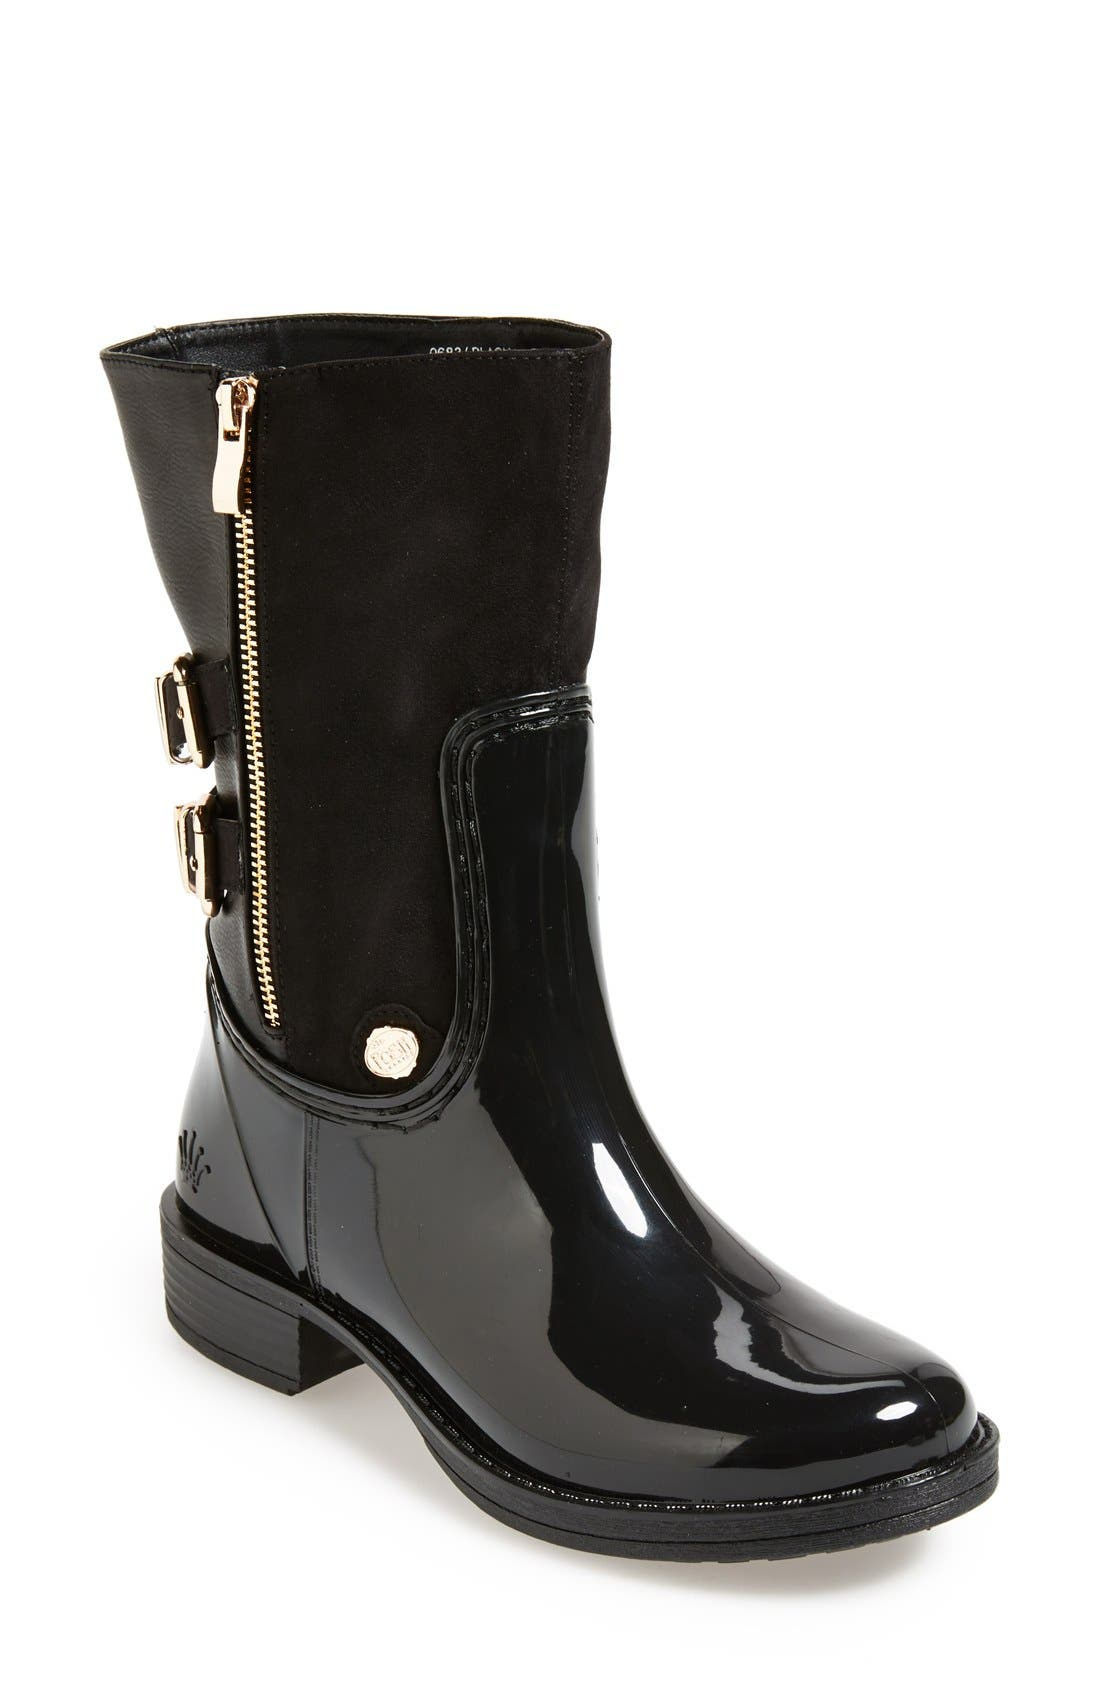 Alternate Image 1 Selected - Posh Wellies 'Resilience' Mid Rain Boot (Women)